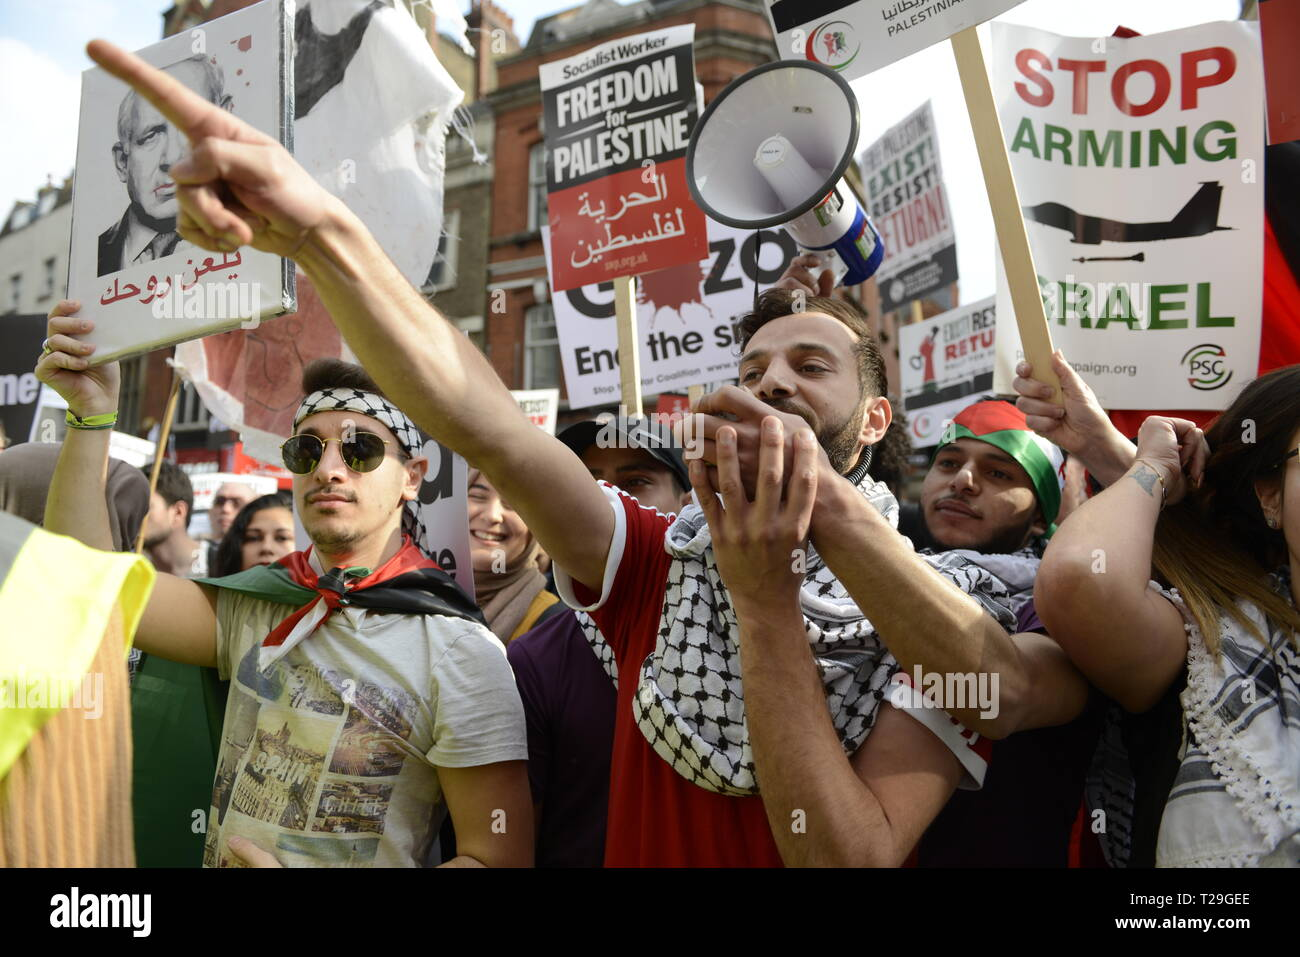 A protester is seen shouting slogans on a megaphone during the Exist, Resist, Return Rally for Palestine in London. People gather outside the Israeli embassy in London to demonstrate against the Israeli government, and to demand respect for Palestinians' fundamental rights to exist, resist and return. Palestinians are calling for global protests to support their right to come back to their villages. Rally was organized by Palestine Solidarity Campaign, Stop the War Coalition, Palestinian Forum in Britain, Friends of Al- Aqsa, and Muslim Association of Britain. - Stock Image